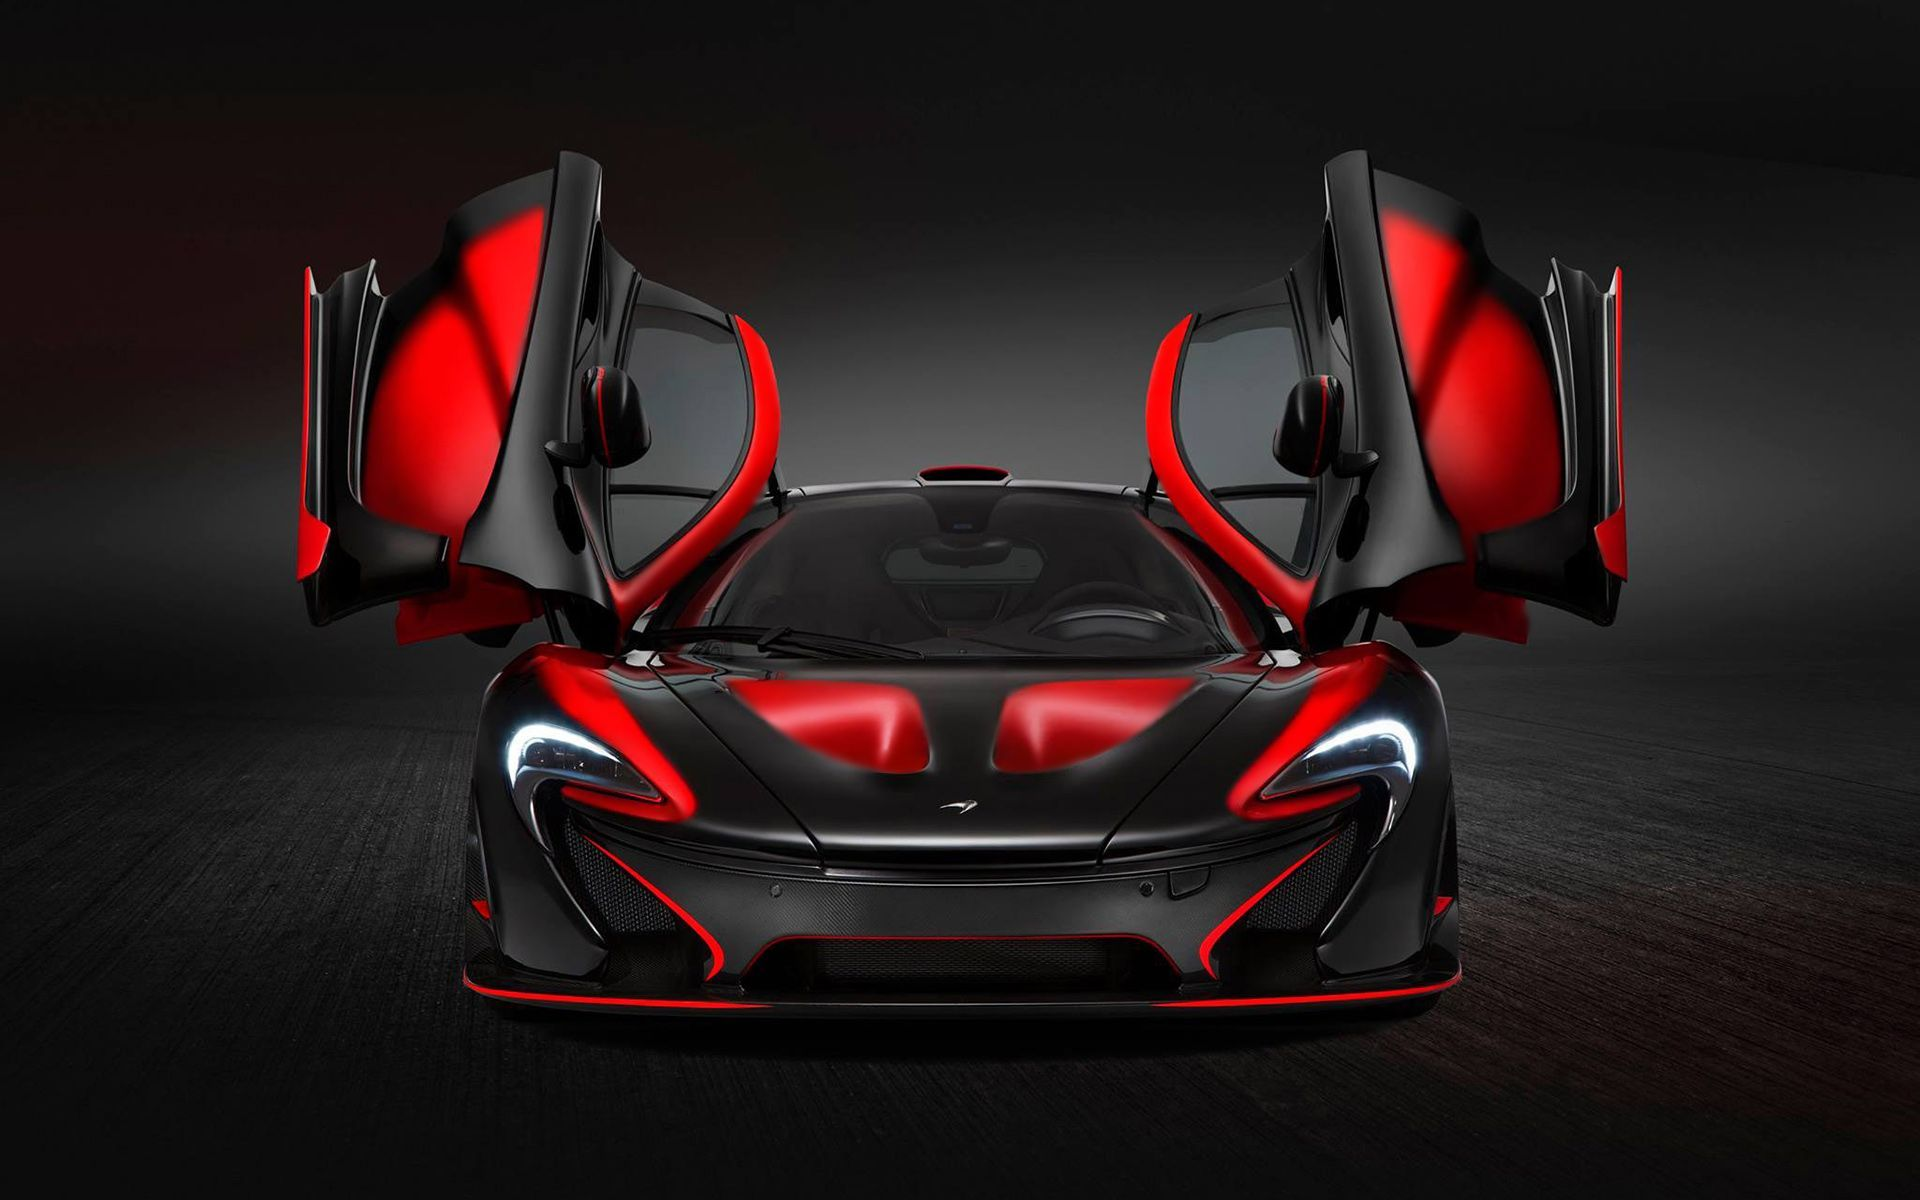 Red And Black Car Wallpapers Top Free Red And Black Car